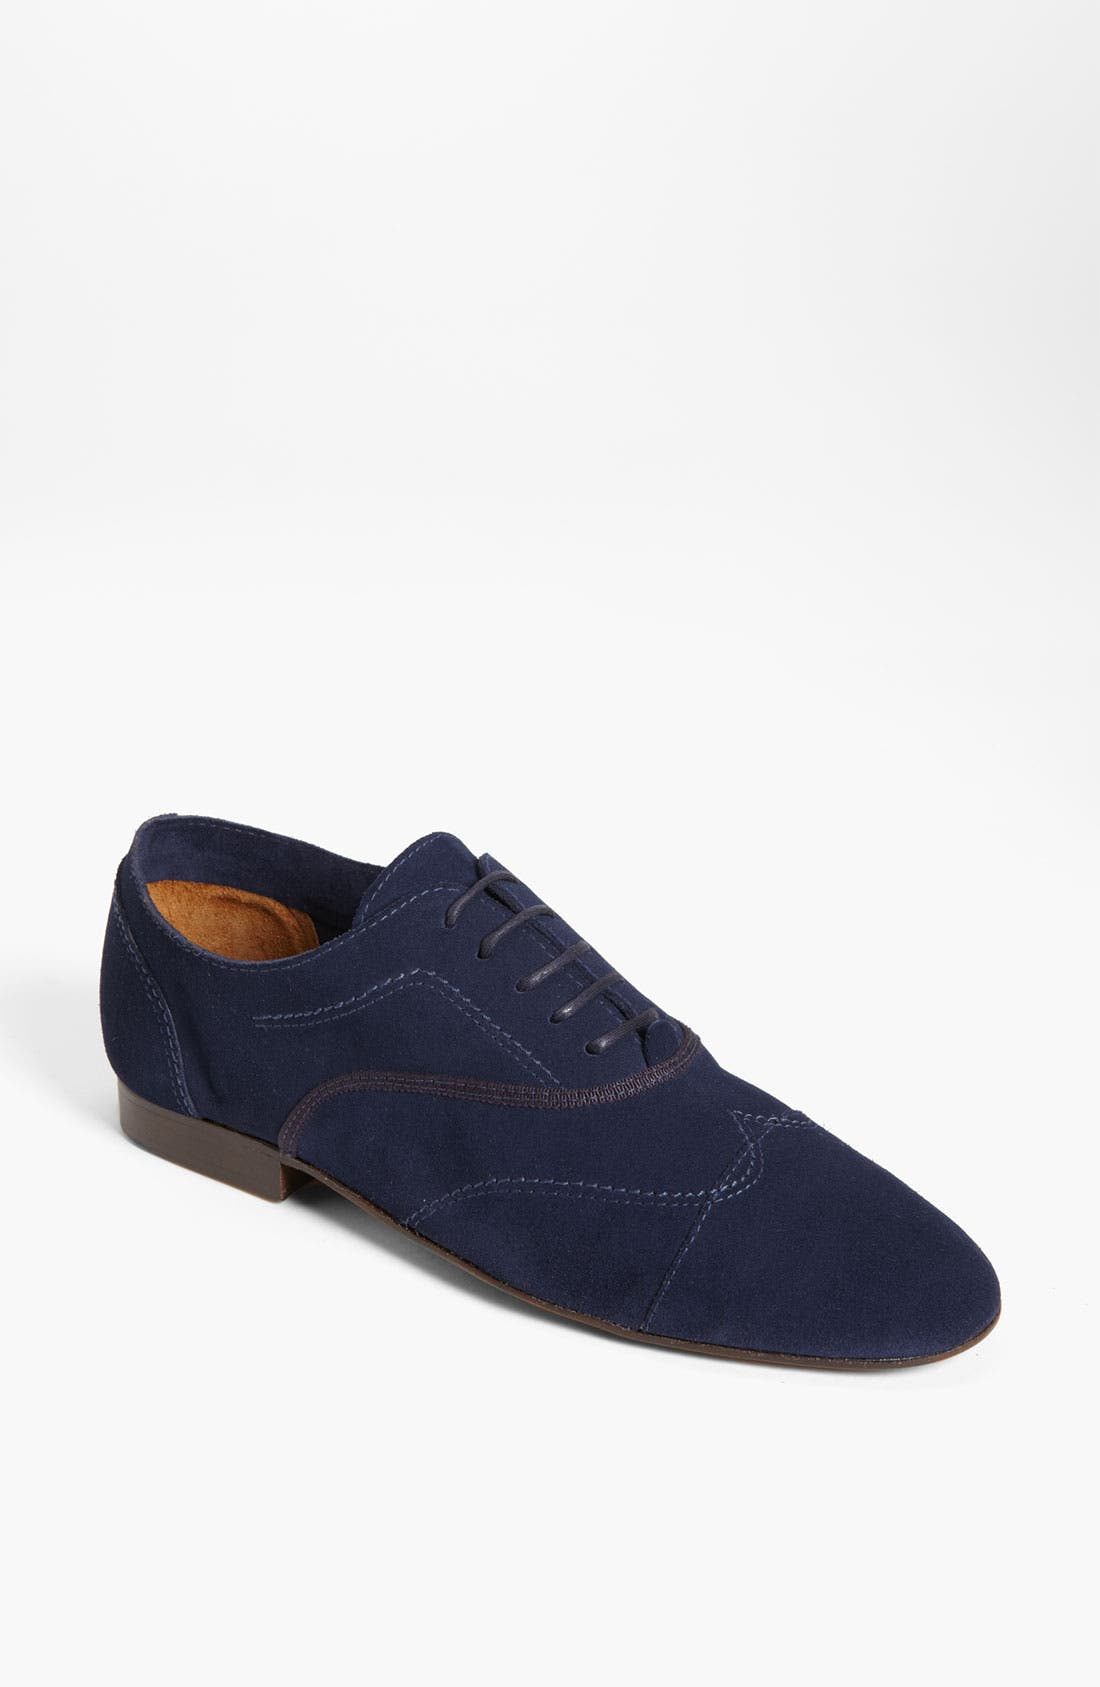 Alternate Image 1 Selected - Lanvin Oxford